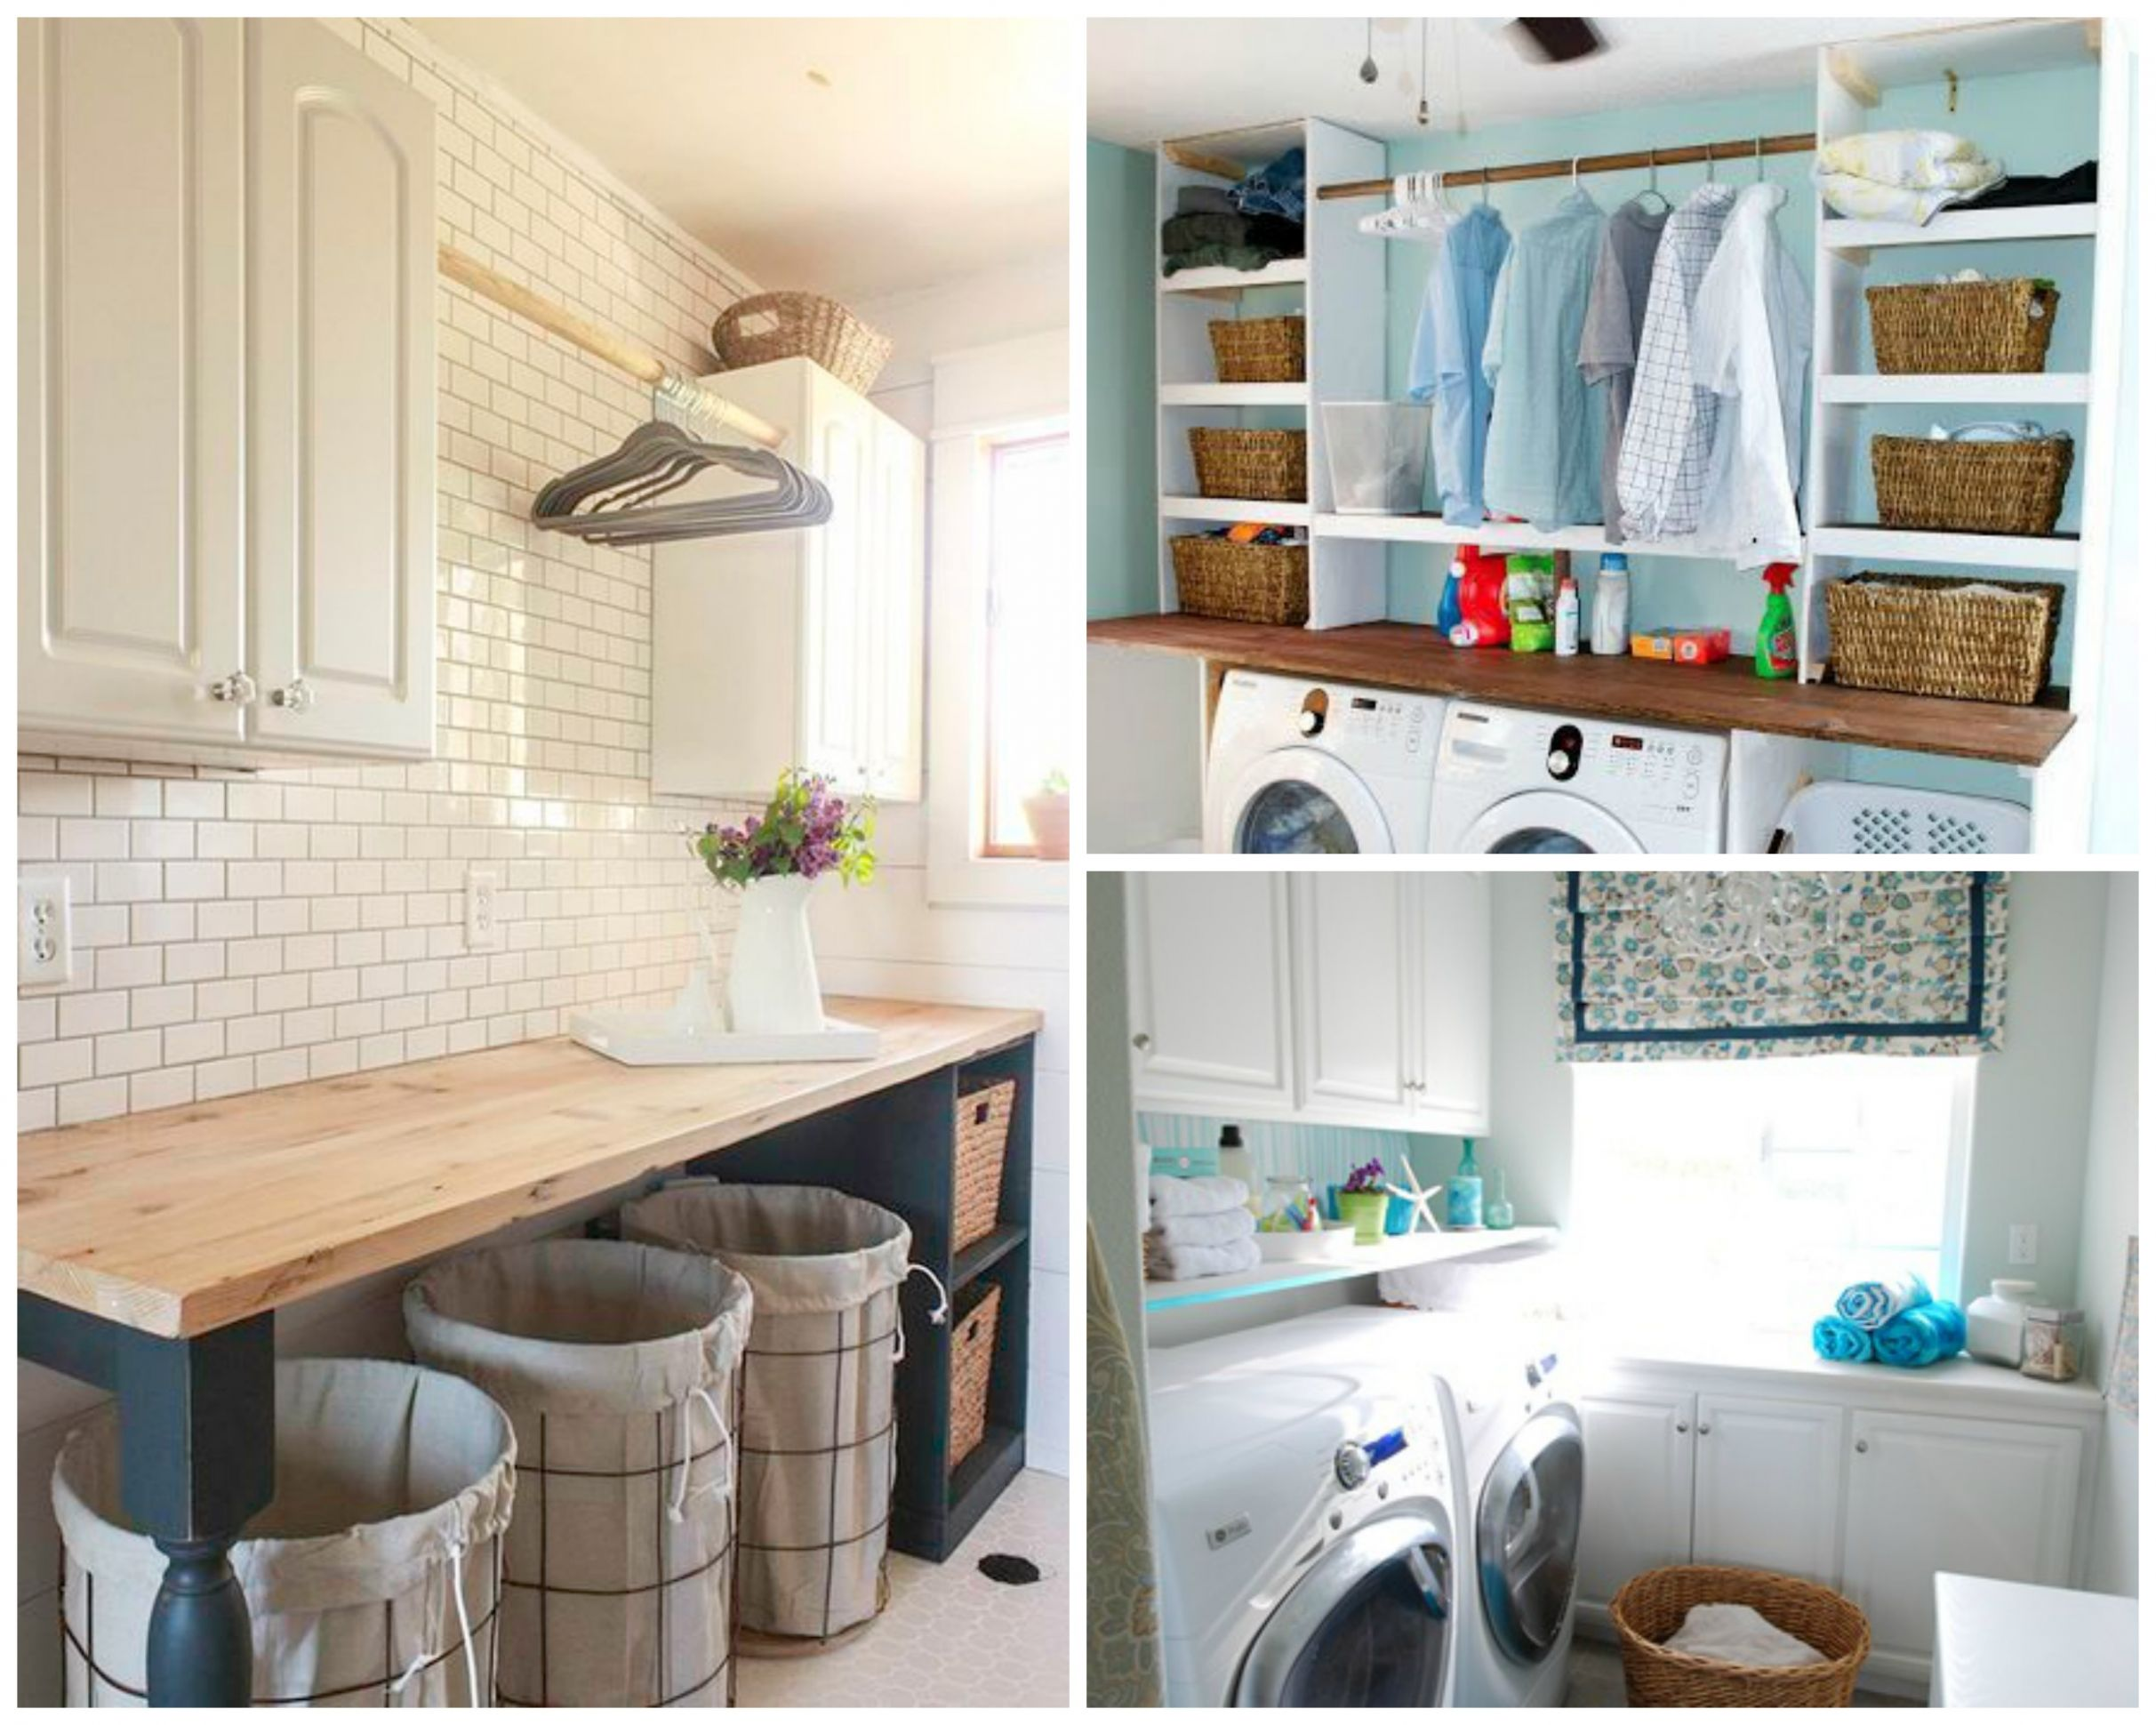 10 Laundry Room Organization Ideas You'll Actually Want to Try